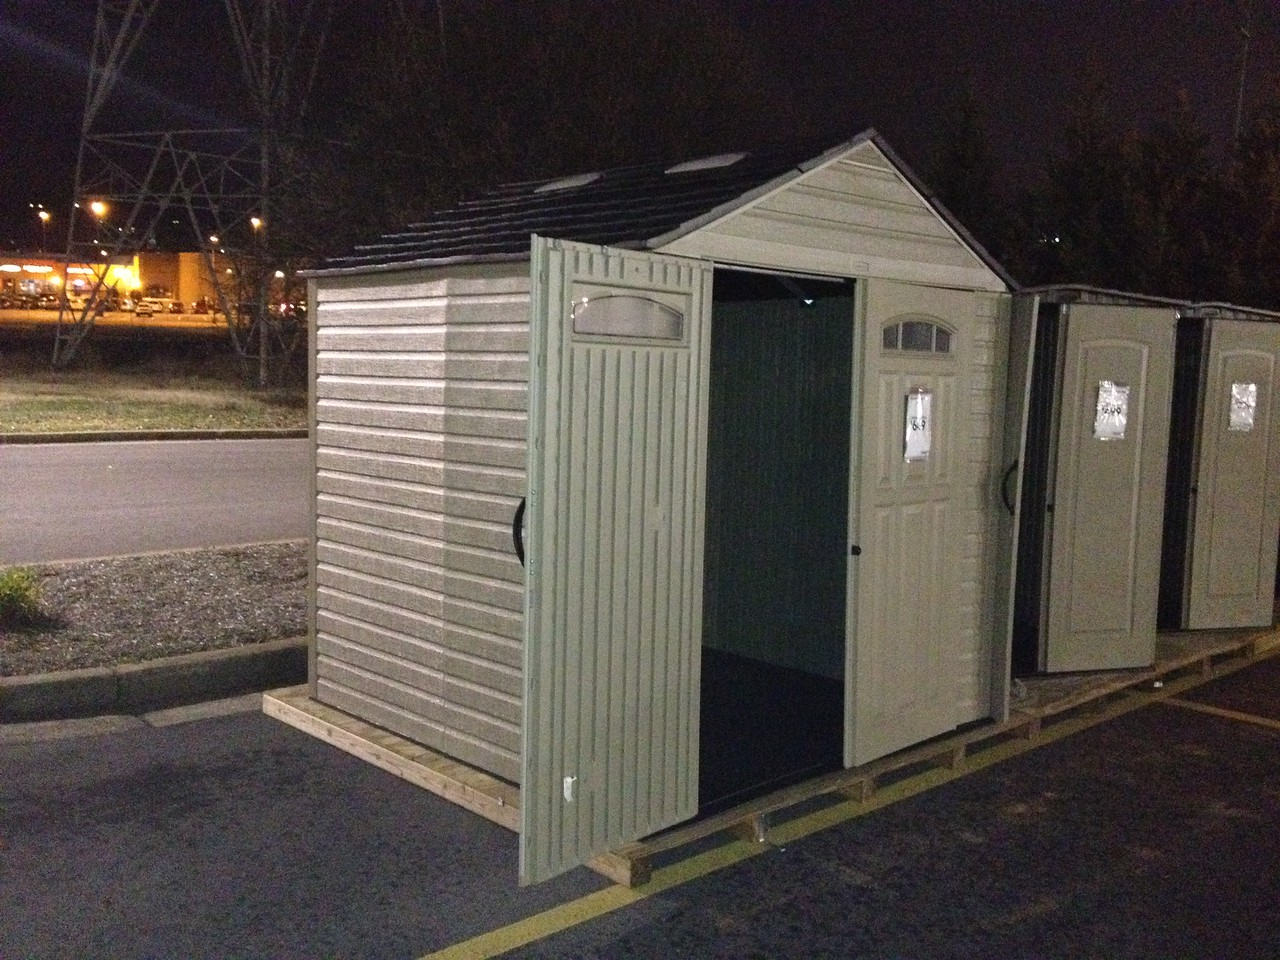 I start the shed search by shopping for small plastic sheds